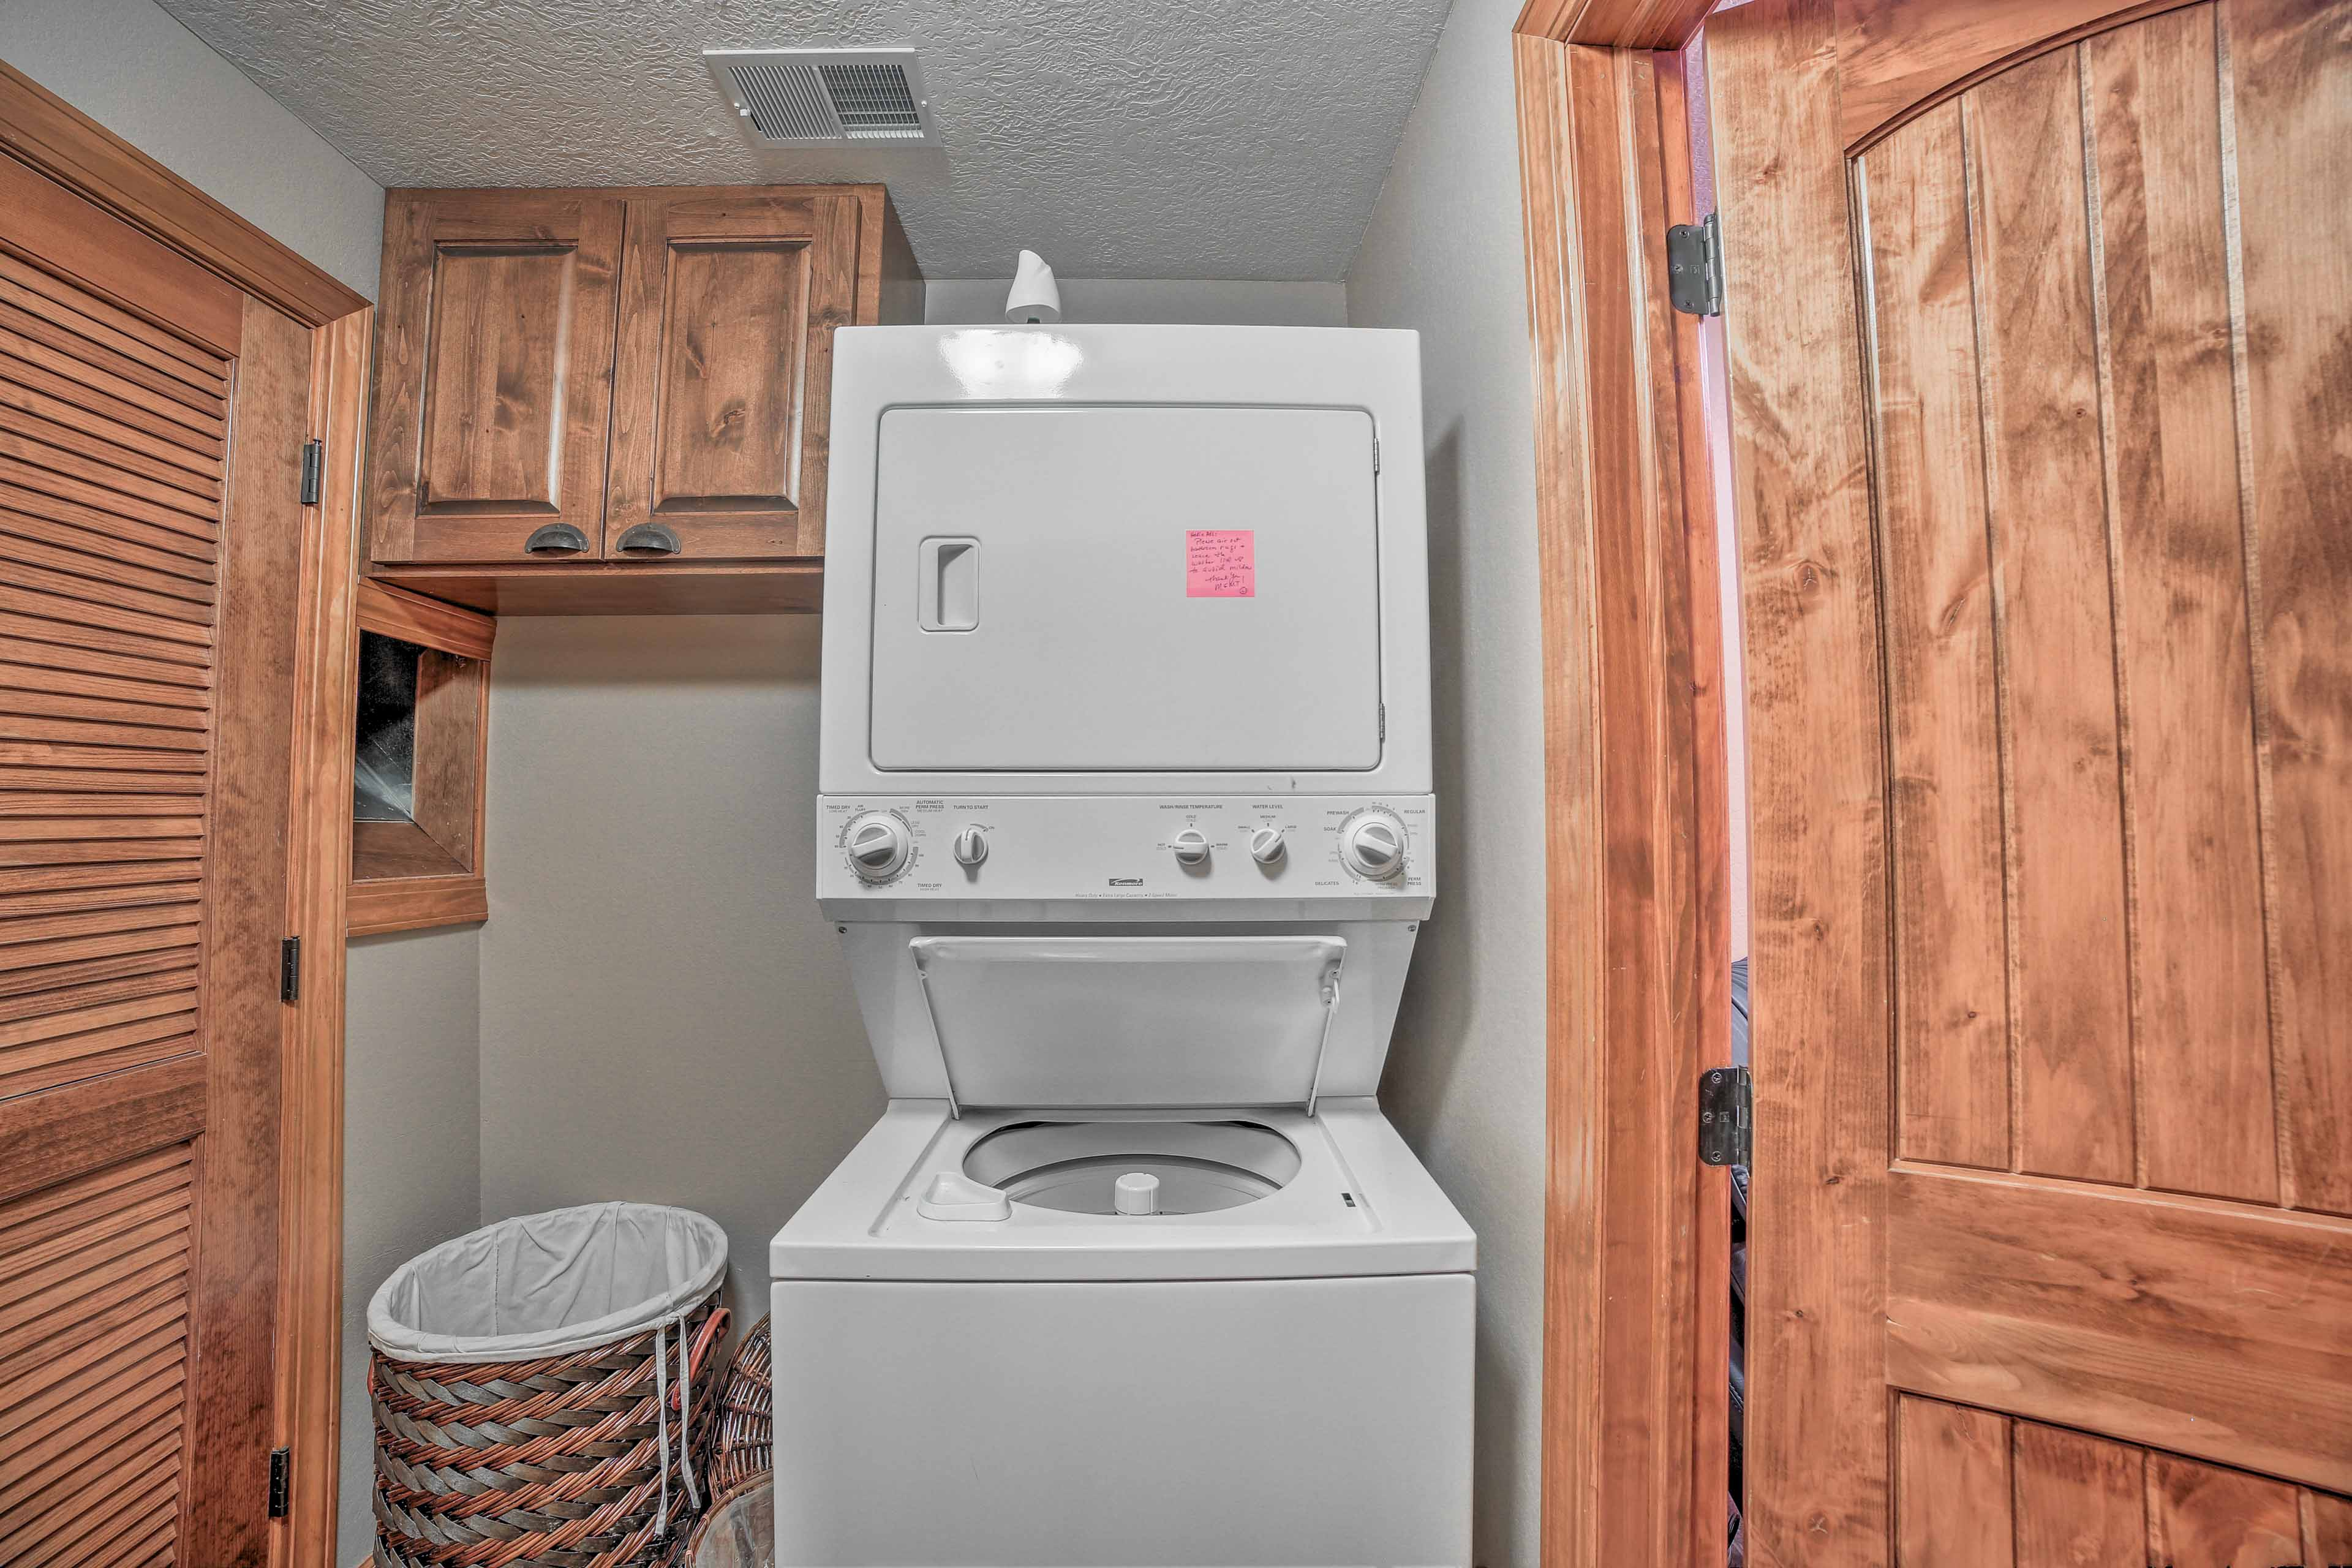 Keep your clothes clean in the washer and dryer unit provided in the home.